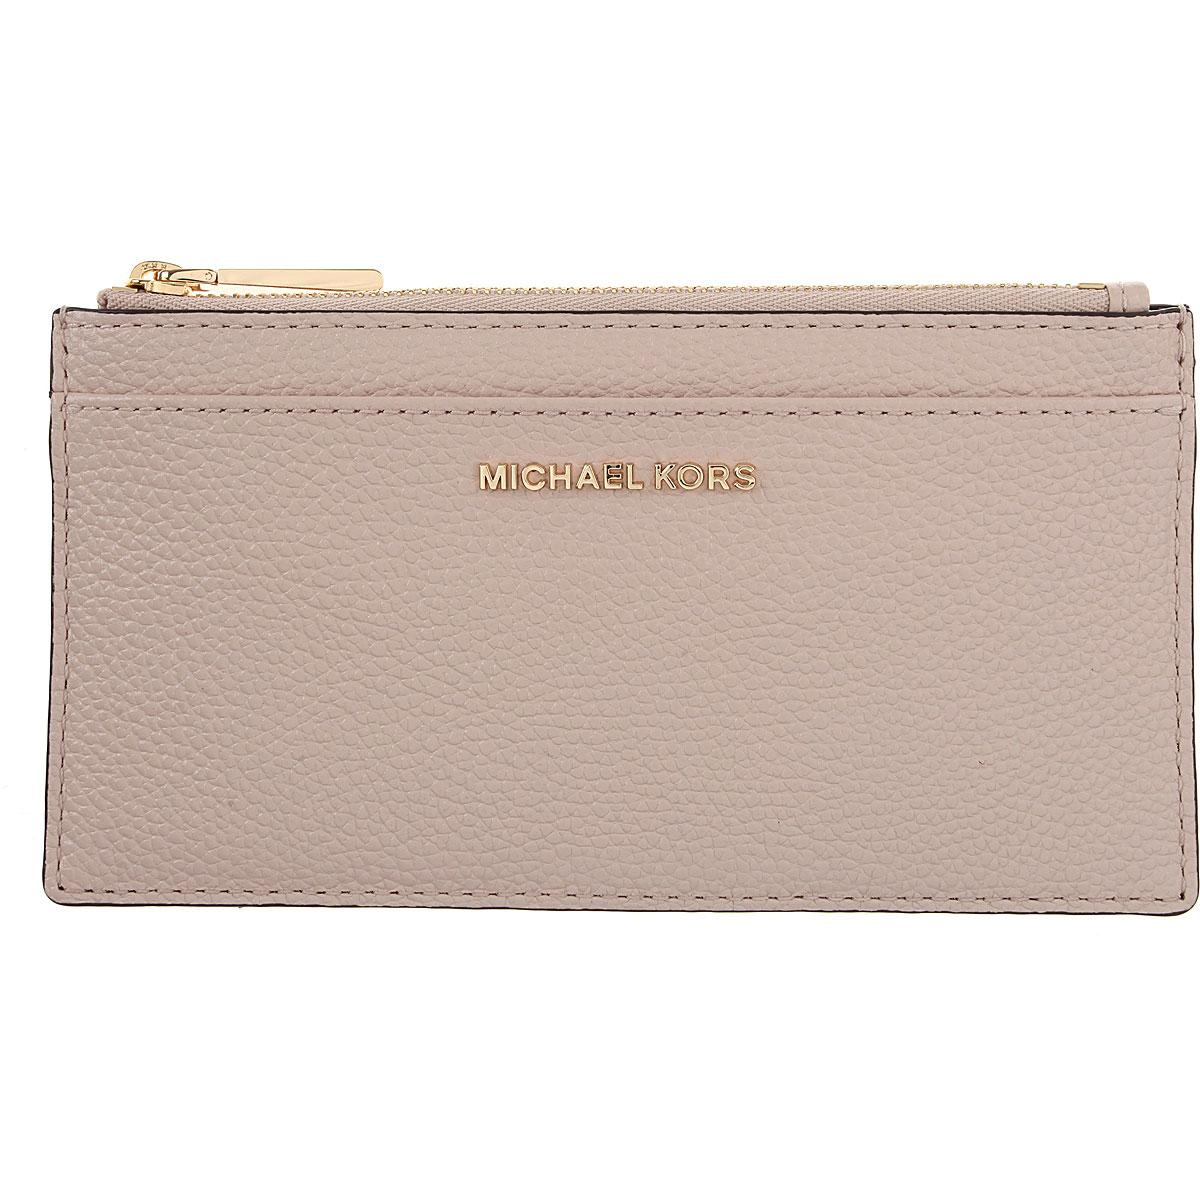 b8f4a7275739 Michael Kors - Pink Wallet For Women On Sale - Lyst. View fullscreen